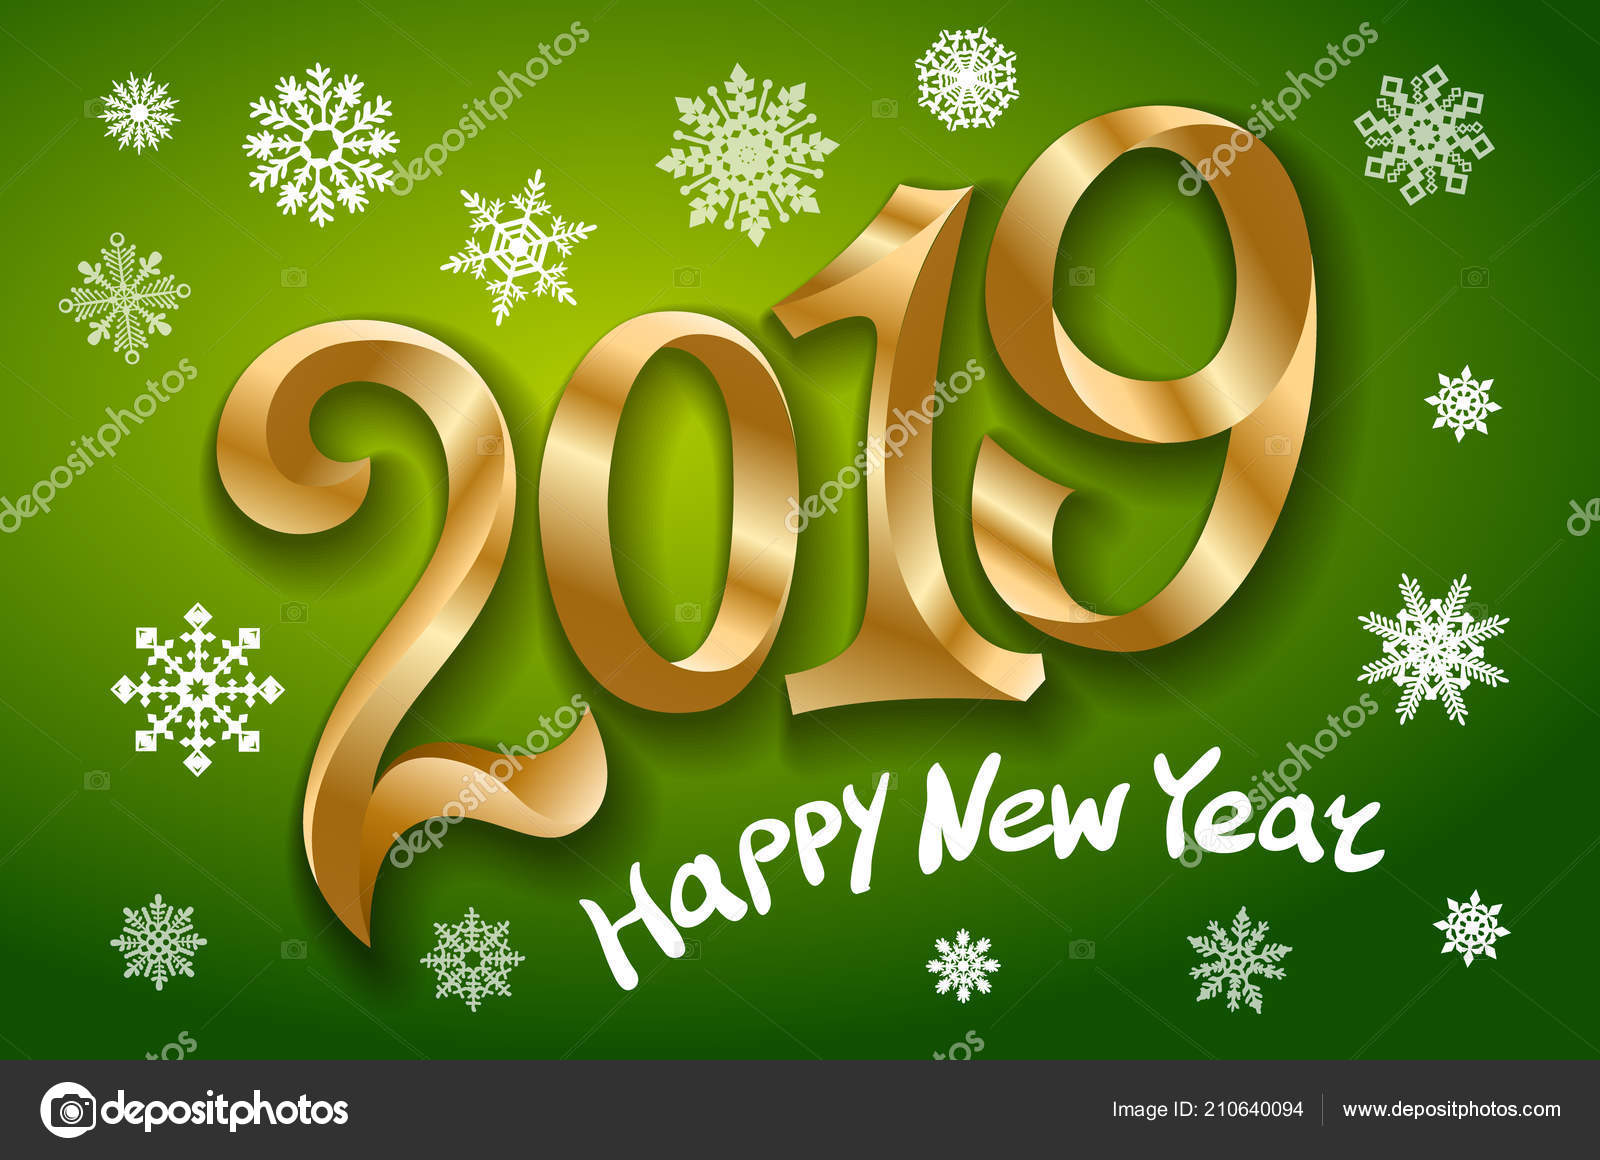 depositphotos_210640094-stock-illustration-happy-new-year-2019-greeting.jpg